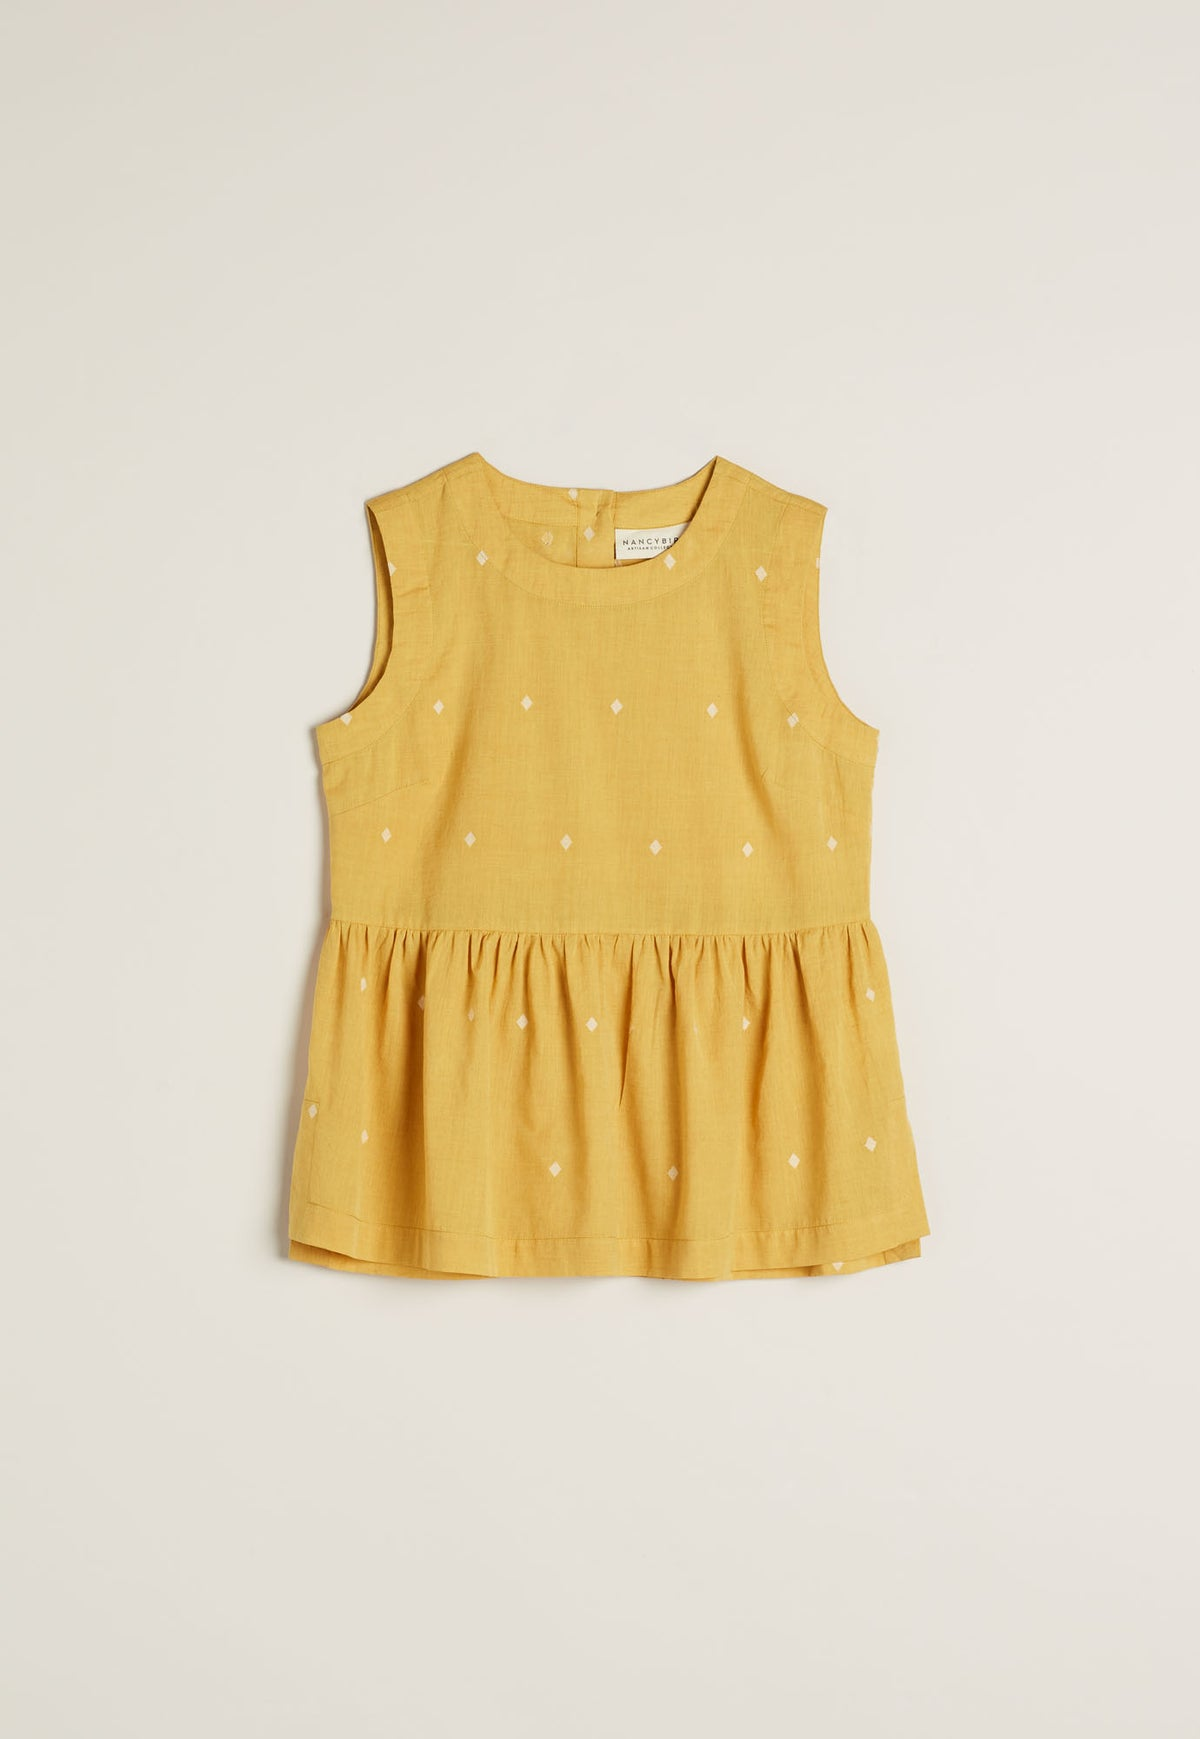 Elm Top - Mustard Diamond